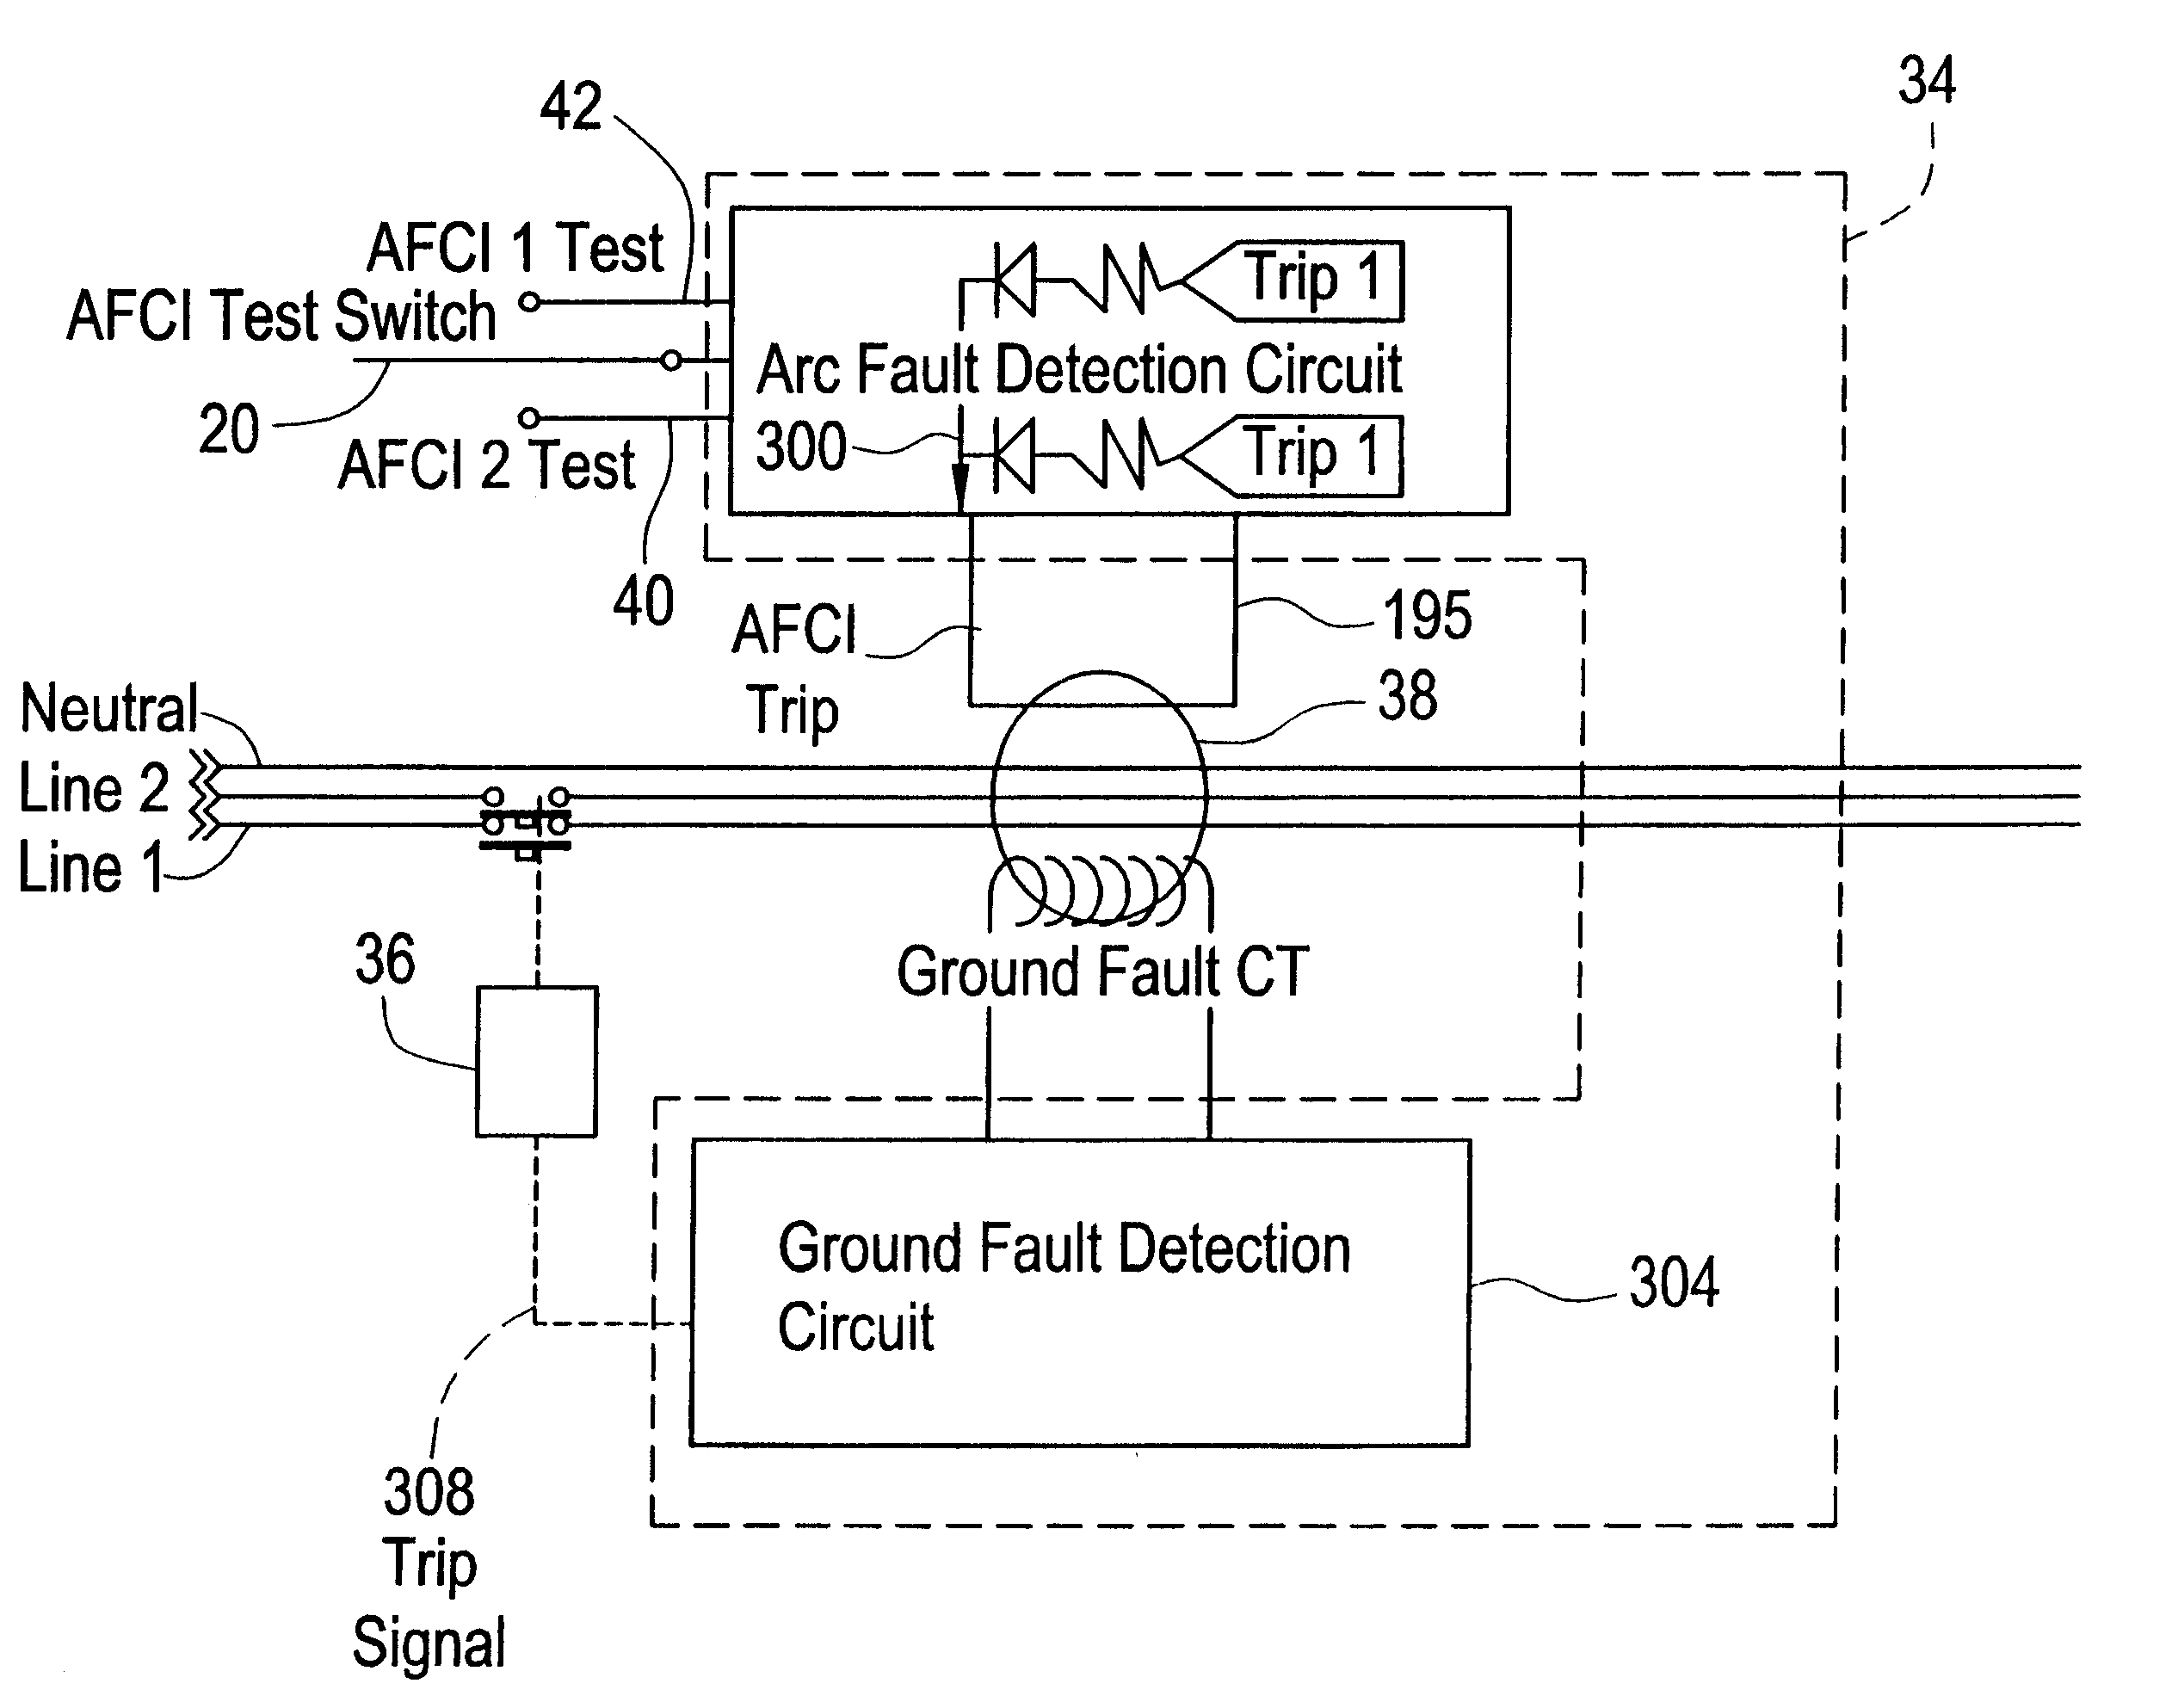 Afci Tester Schematic The Portal And Forum Of Wiring Diagram Receptacle Patent Us6538862 Circuit Breaker With A Single Test Button Rh Google Com Pg Outlet